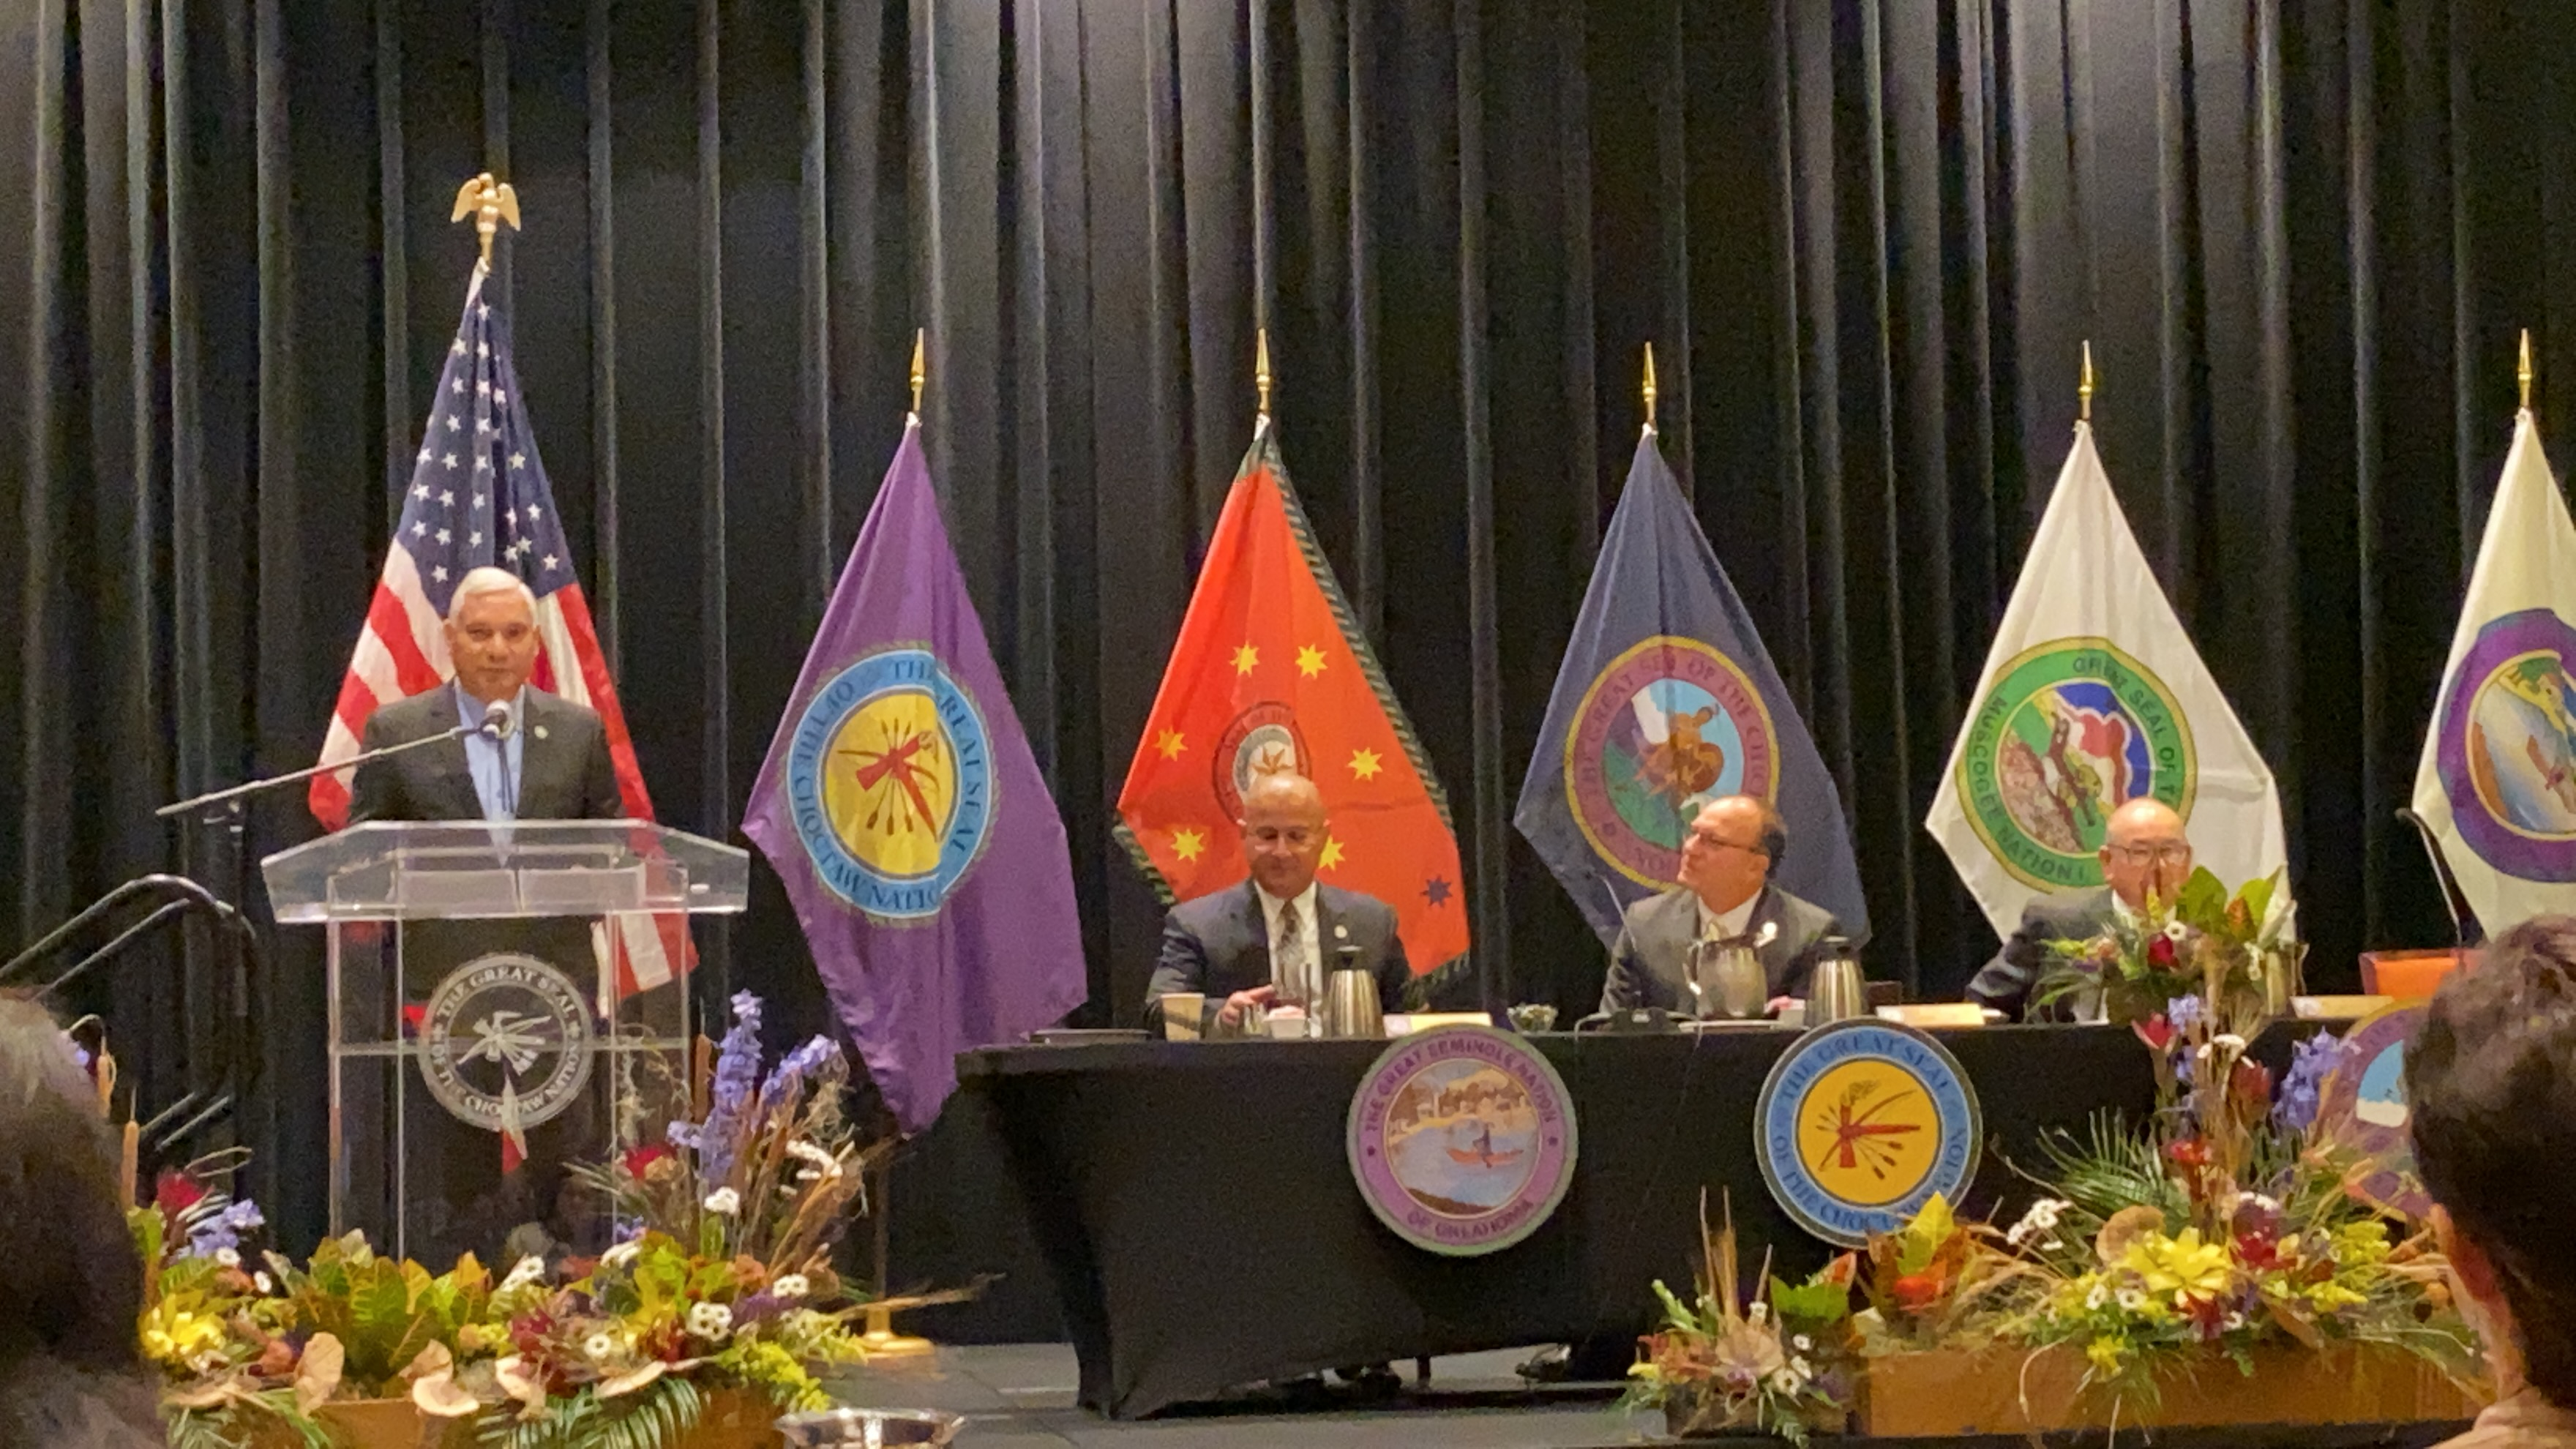 Inter-Tribal Council of the Five Civilized Tribes unites once again in Choctaw country